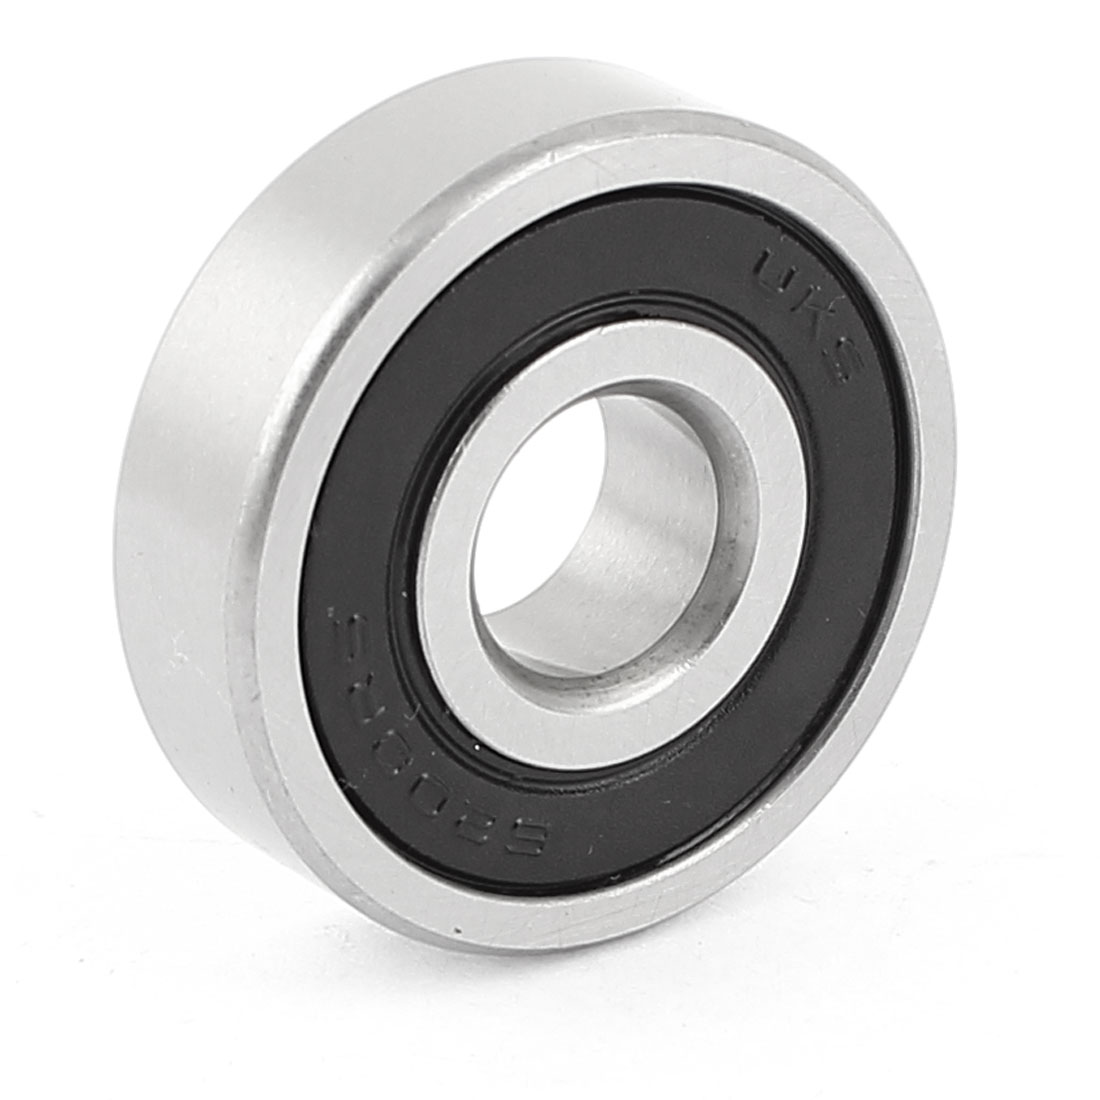 6200RS 10mm Inner 30mm Outer Dia Metal Shielded Rubber Sealed Single Row Deep Groove Ball Bearing for Electric Motor